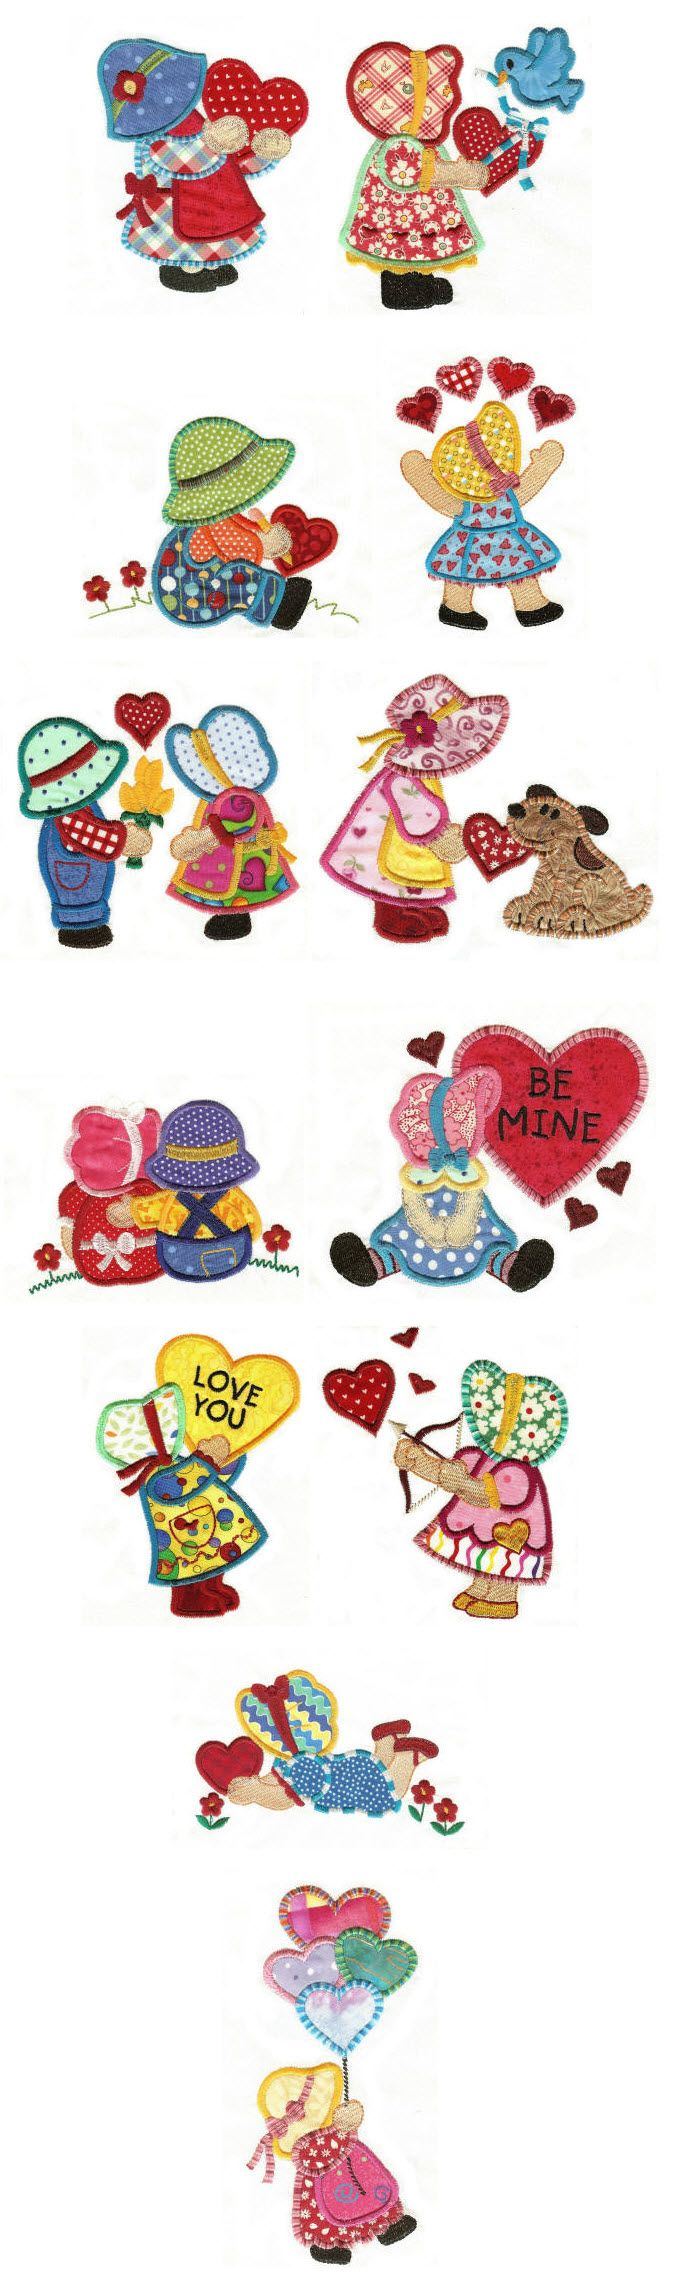 Embroidery | Free Machine Embroidery Designs| Sunbonnets in Love Applique